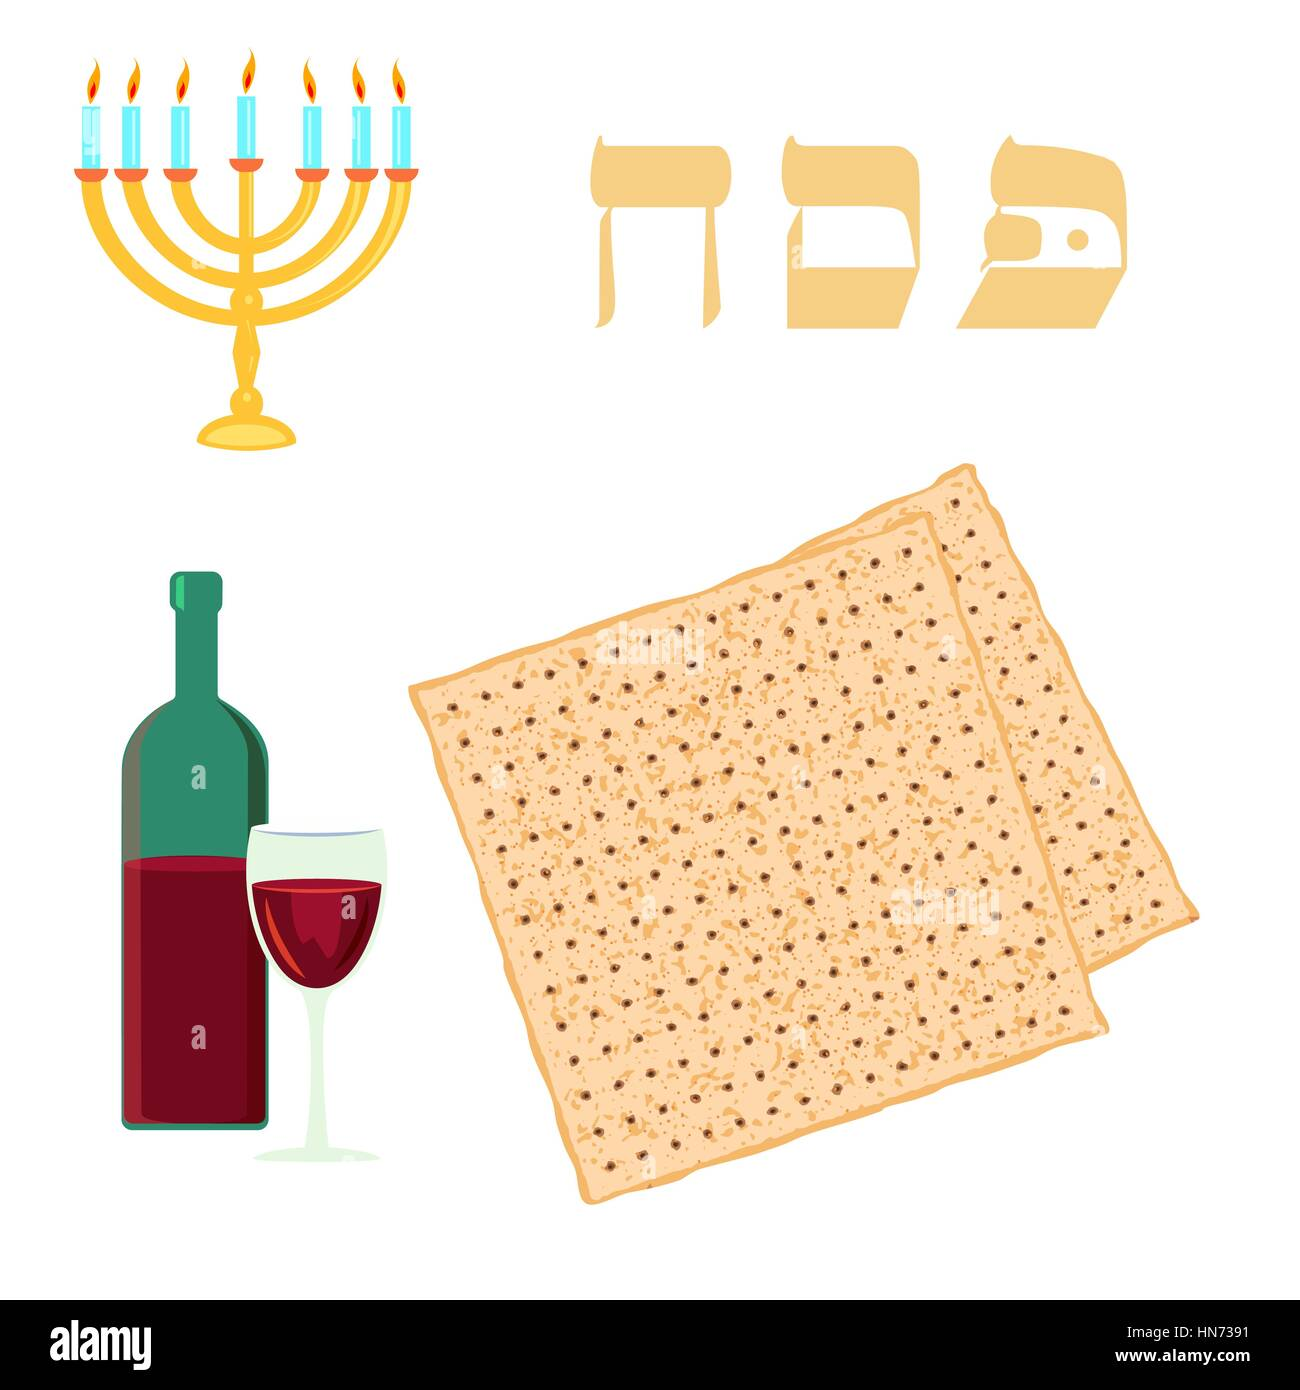 Passover traditional matzoh, menorah and wine. Vector illustration on white background - Stock Image